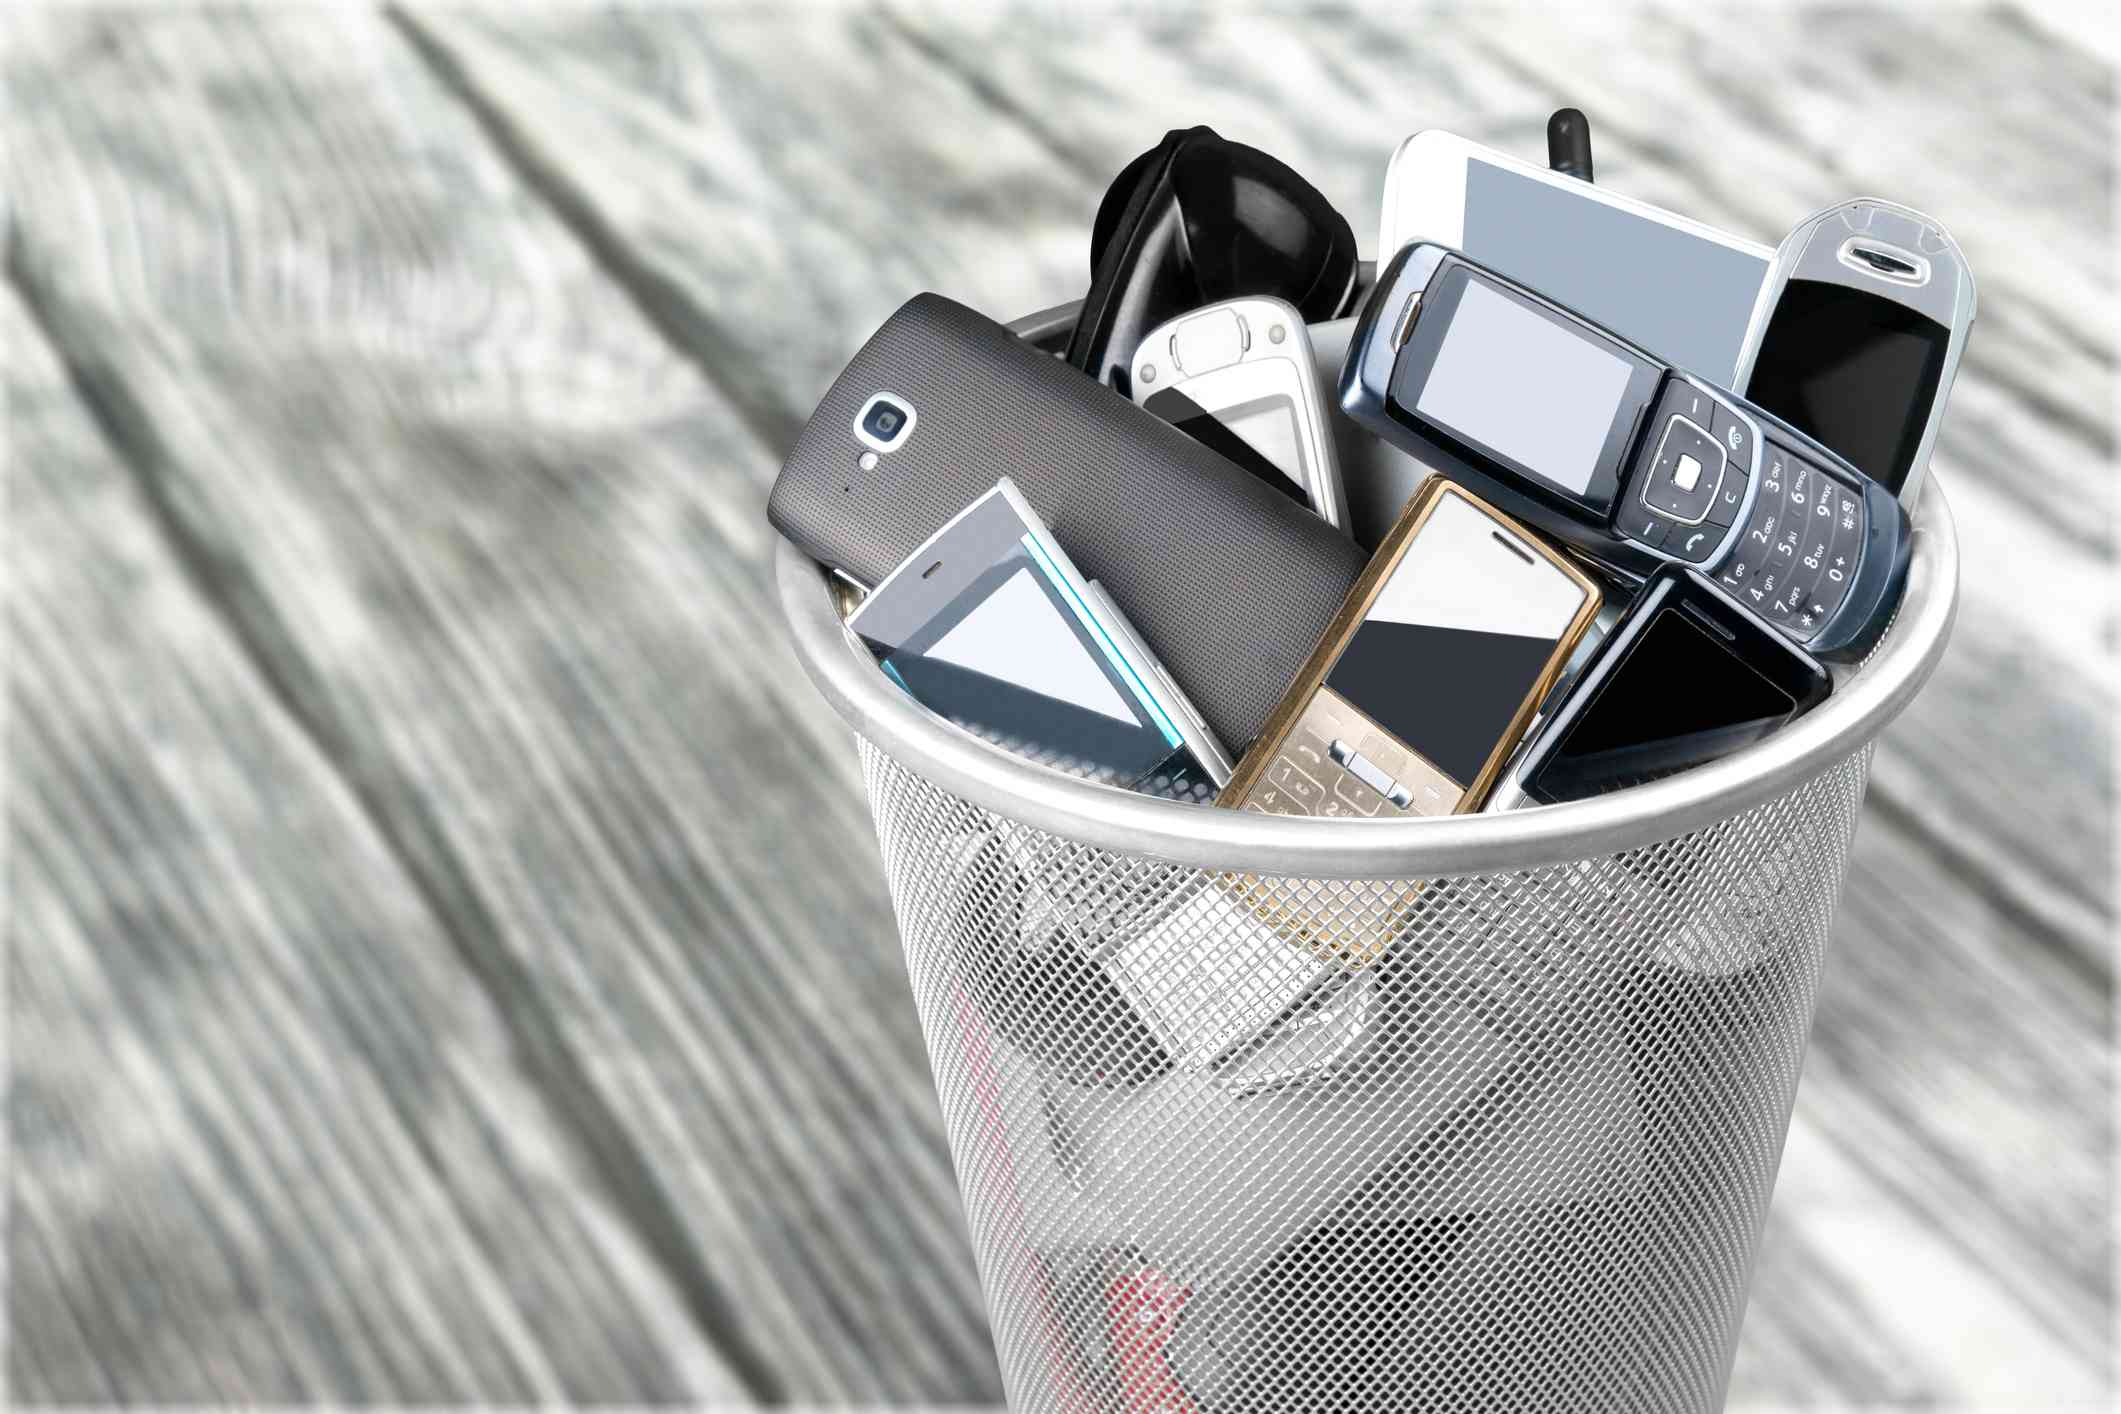 Cell phones piled up in a garbage bin.